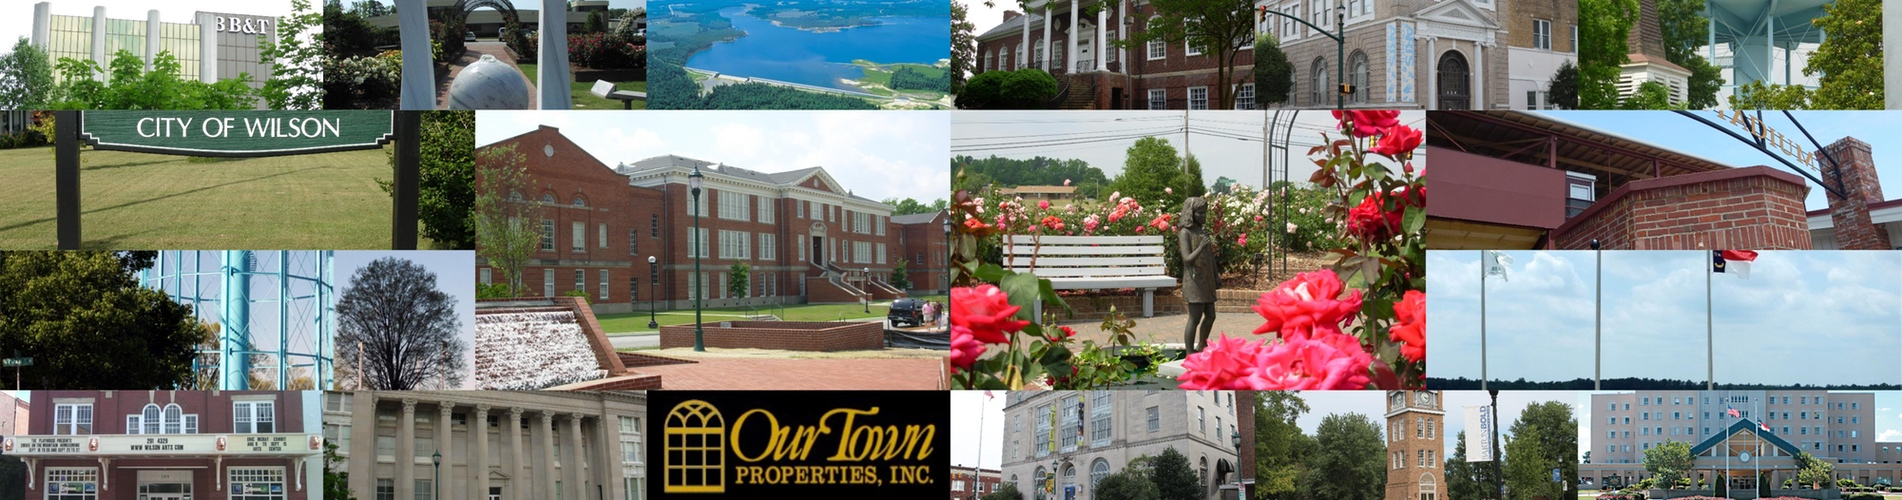 Our Town Properties - Wilson, NC Real Estate